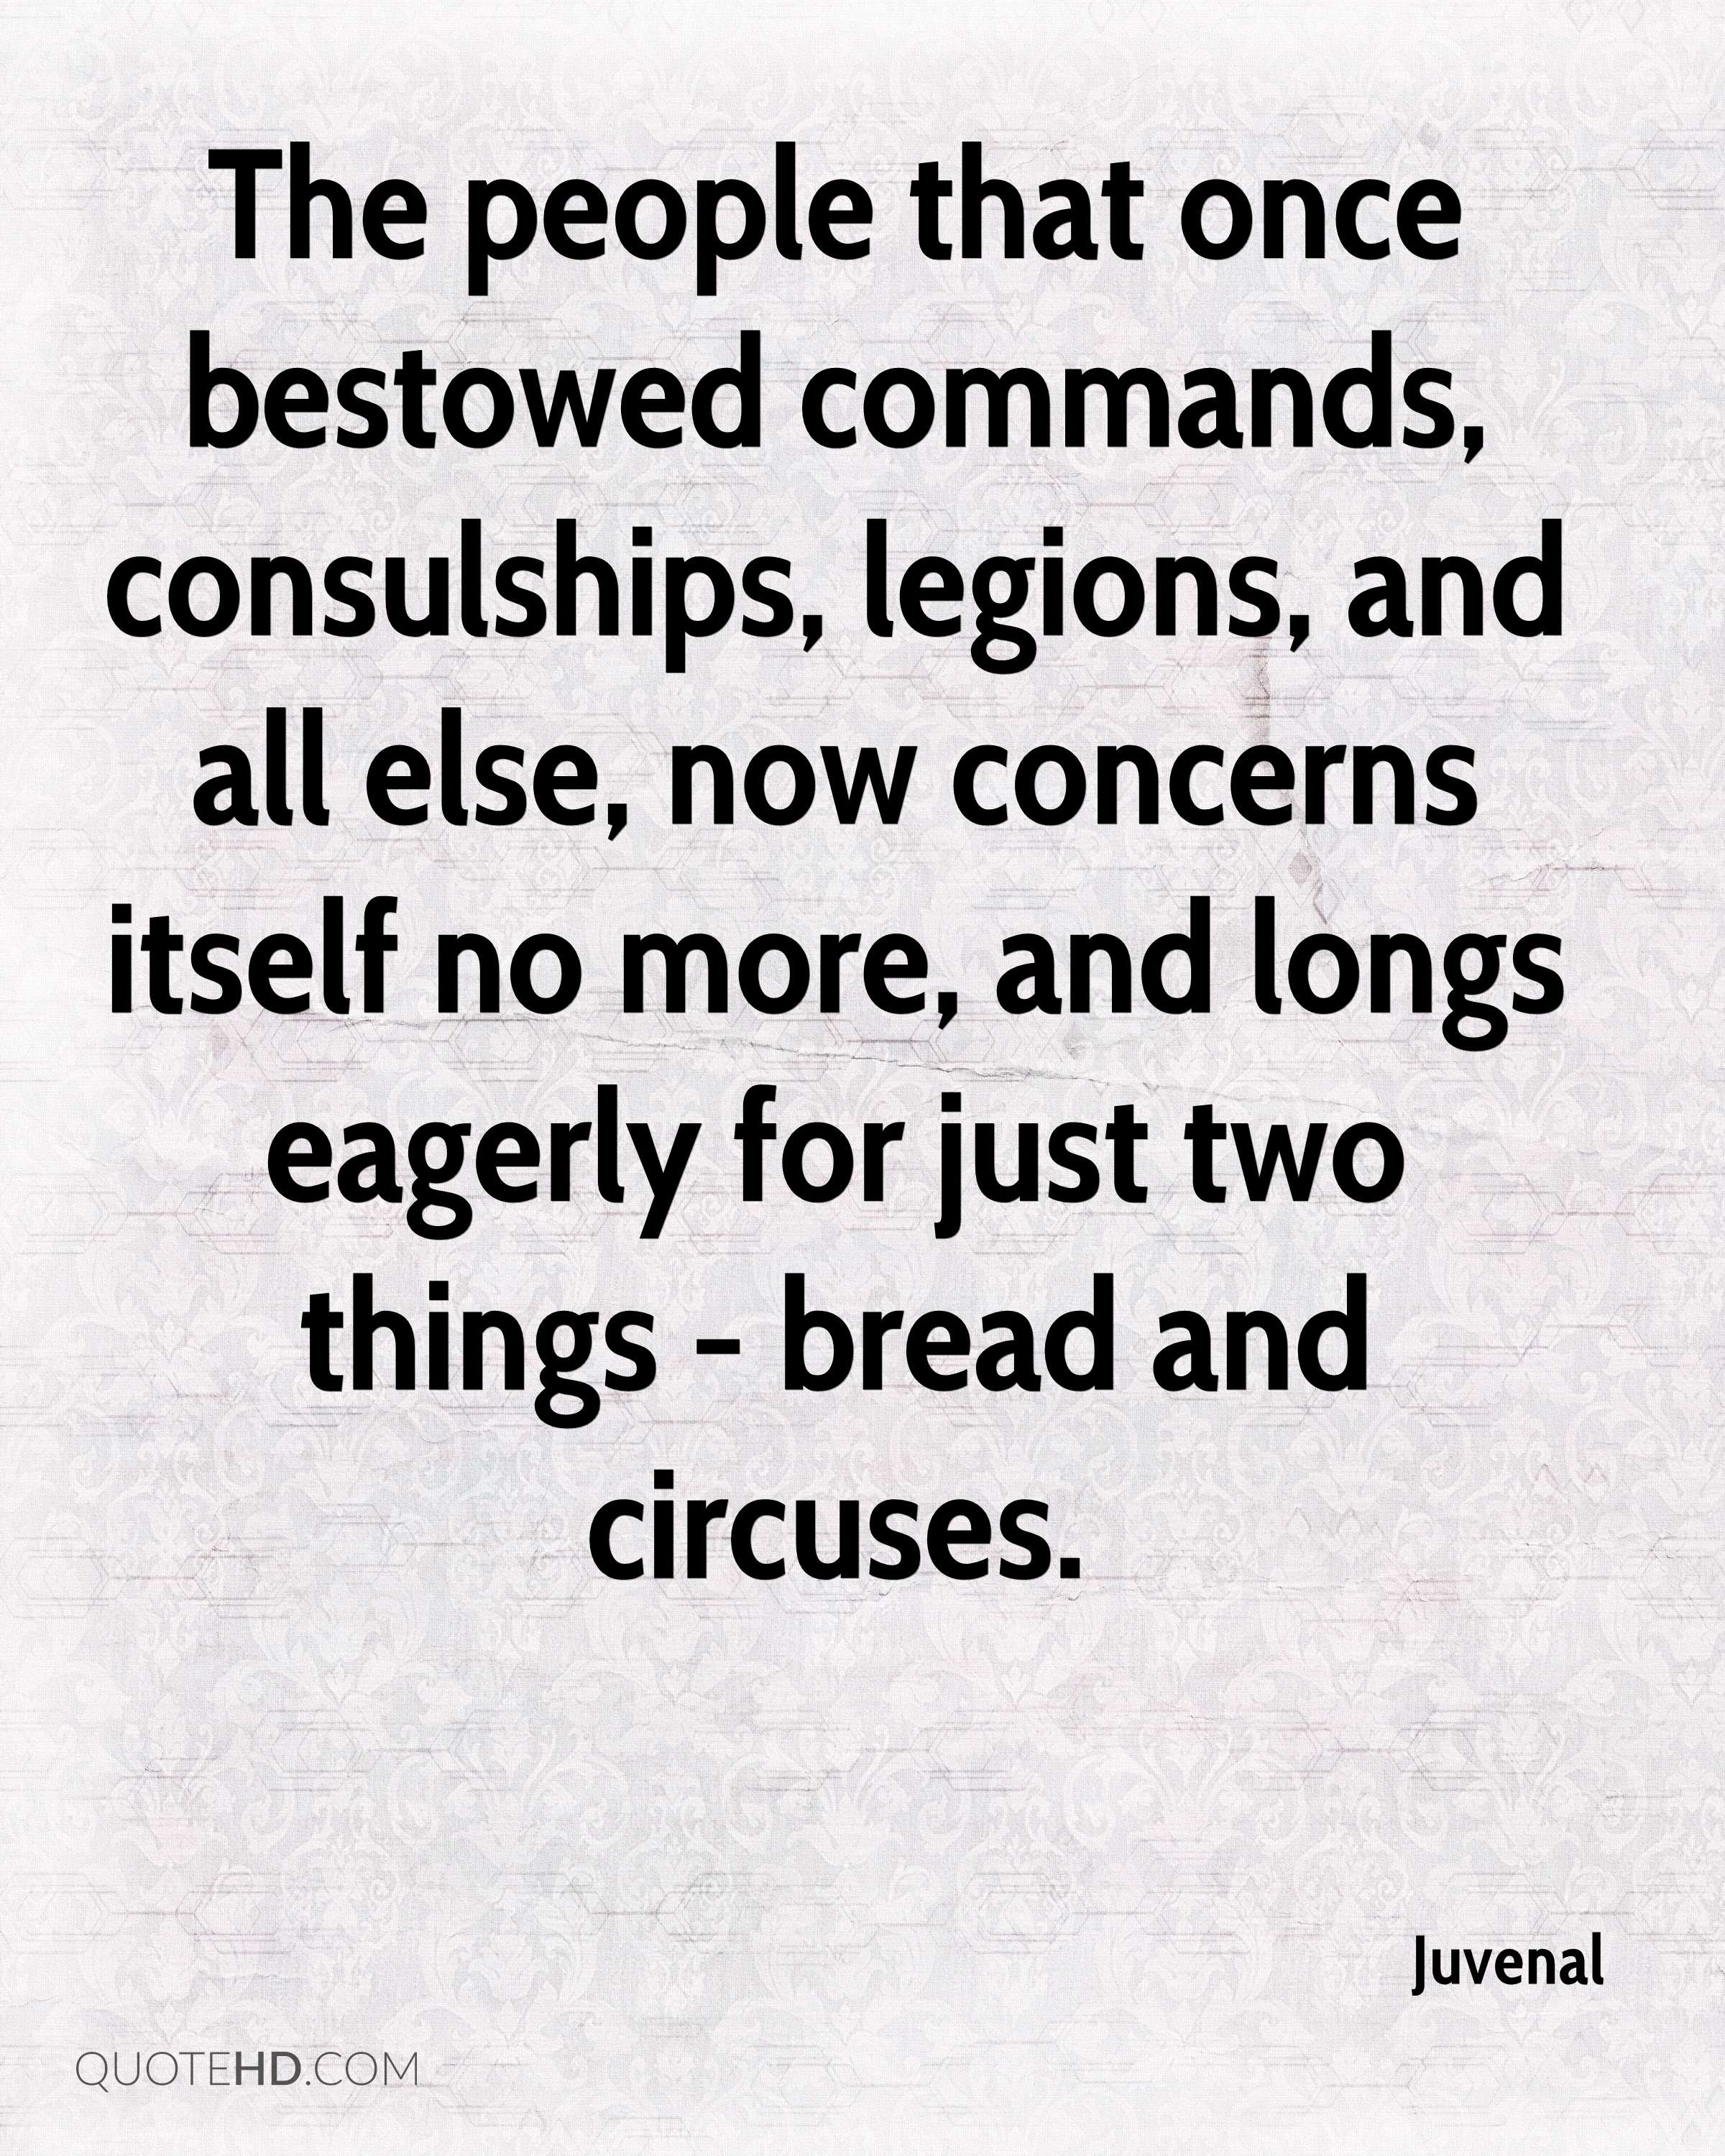 The people that once bestowed commands, consulships, legions, and all else, now concerns itself no more, and longs eagerly for just two things - bread and circuses.